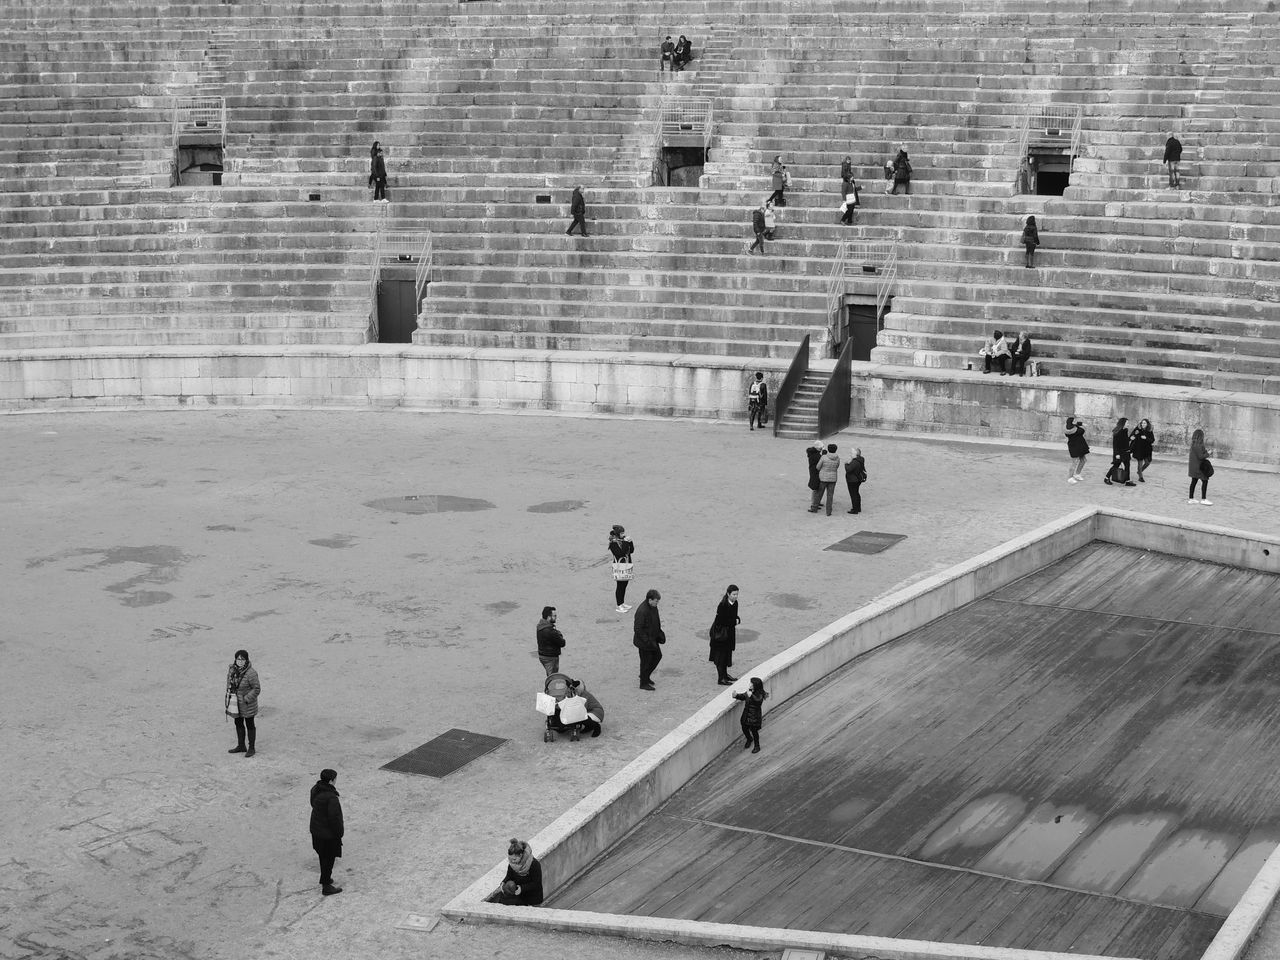 Adult Adults Only Architecture Arena Arenadiverona Black & White Black And White Black And White Photography Black&white Blackandwhite Blackandwhite Photography Building Exterior Day High Angle View Large Group Of People Leisure Activity Lifestyles Men Outdoors People Real People Shadow Sunlight Walking Women